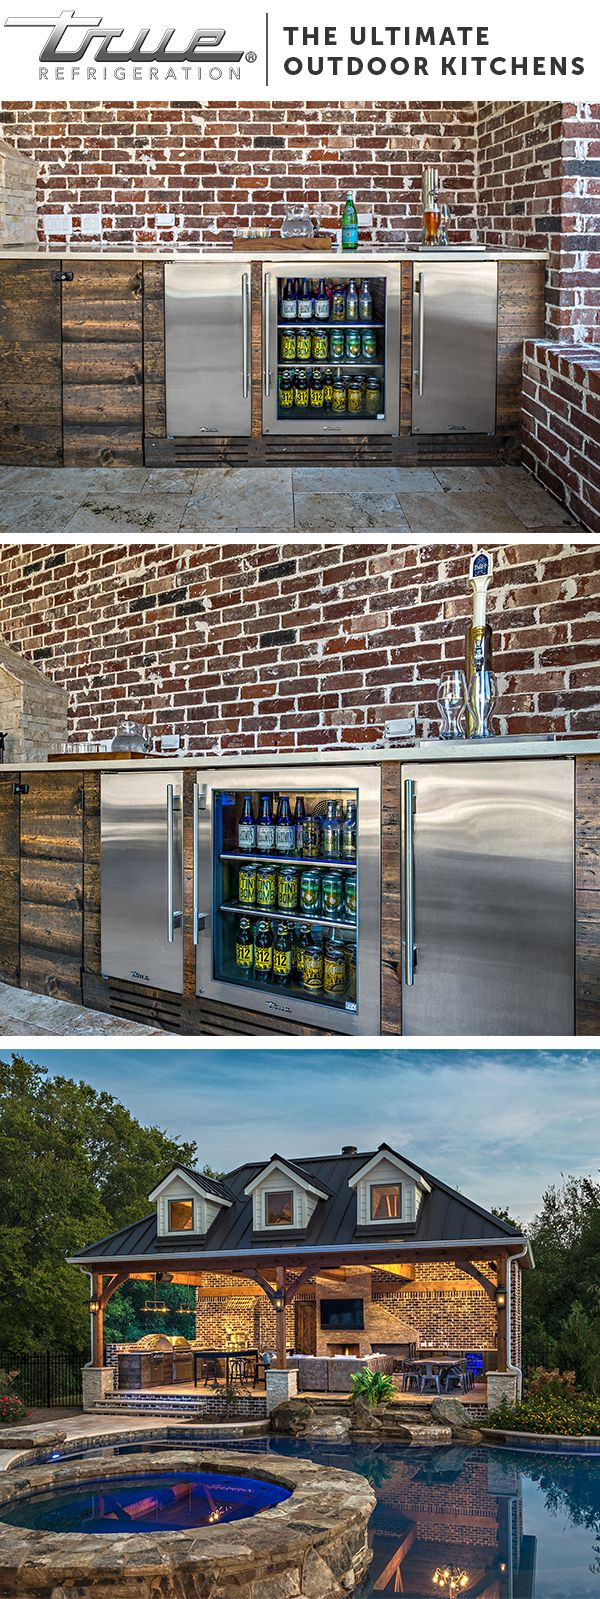 At TRUE We Design Products To Fully Suit Your Outdoor Kitchen. Clear Ice,  Beer